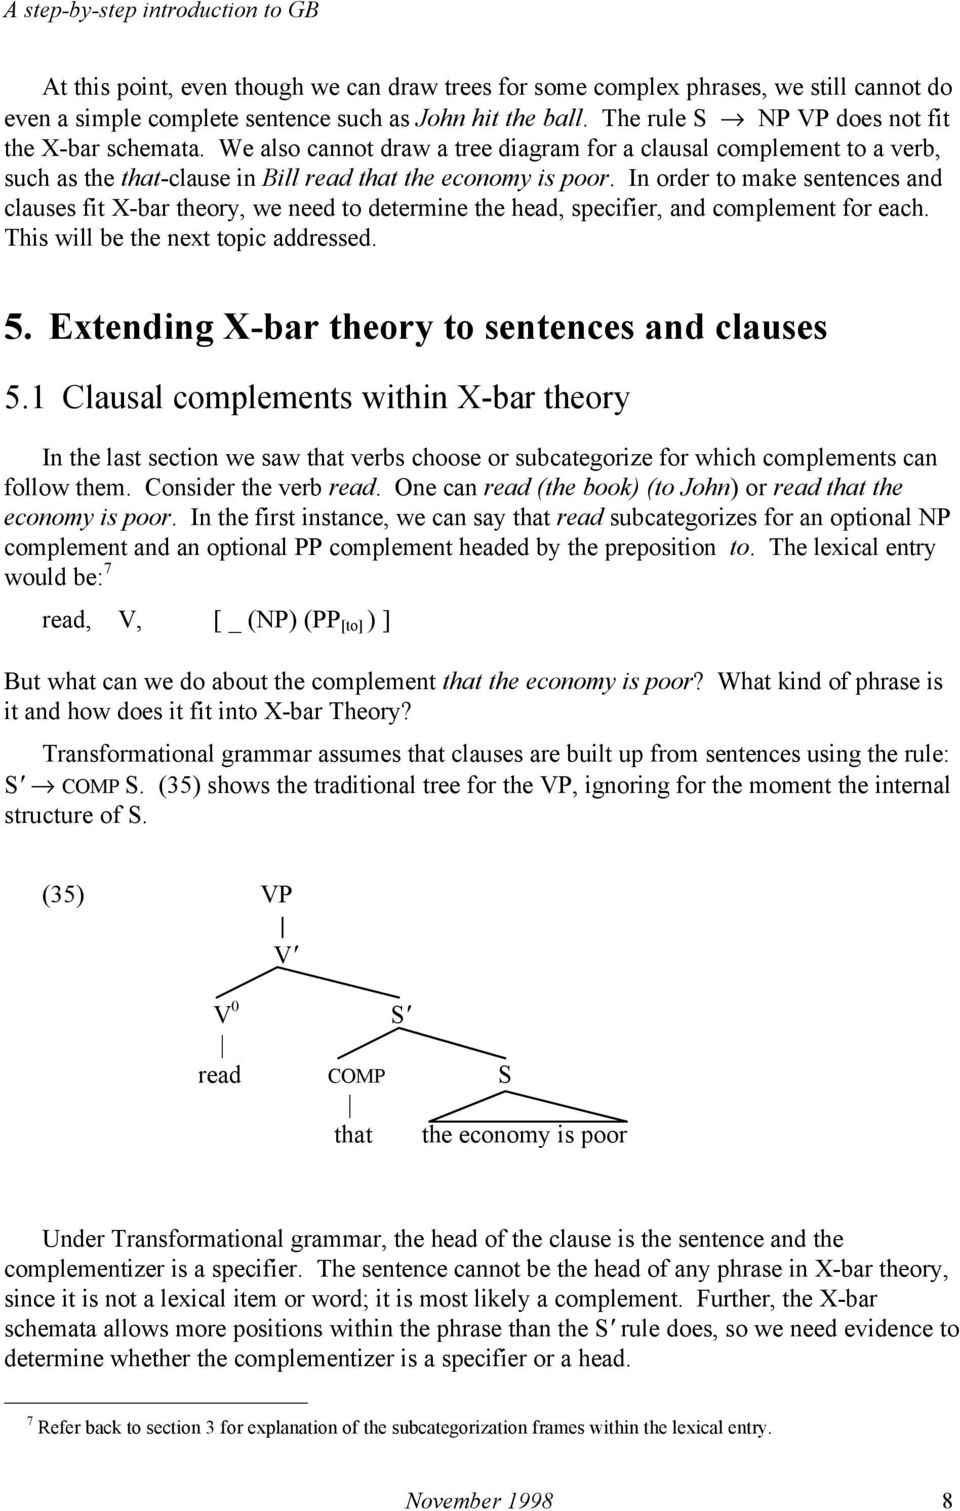 In order to make sentences and clauses fit X-bar theory, we need to determine the head, specifier, and complement for each. This will be the next topic addressed. 5.